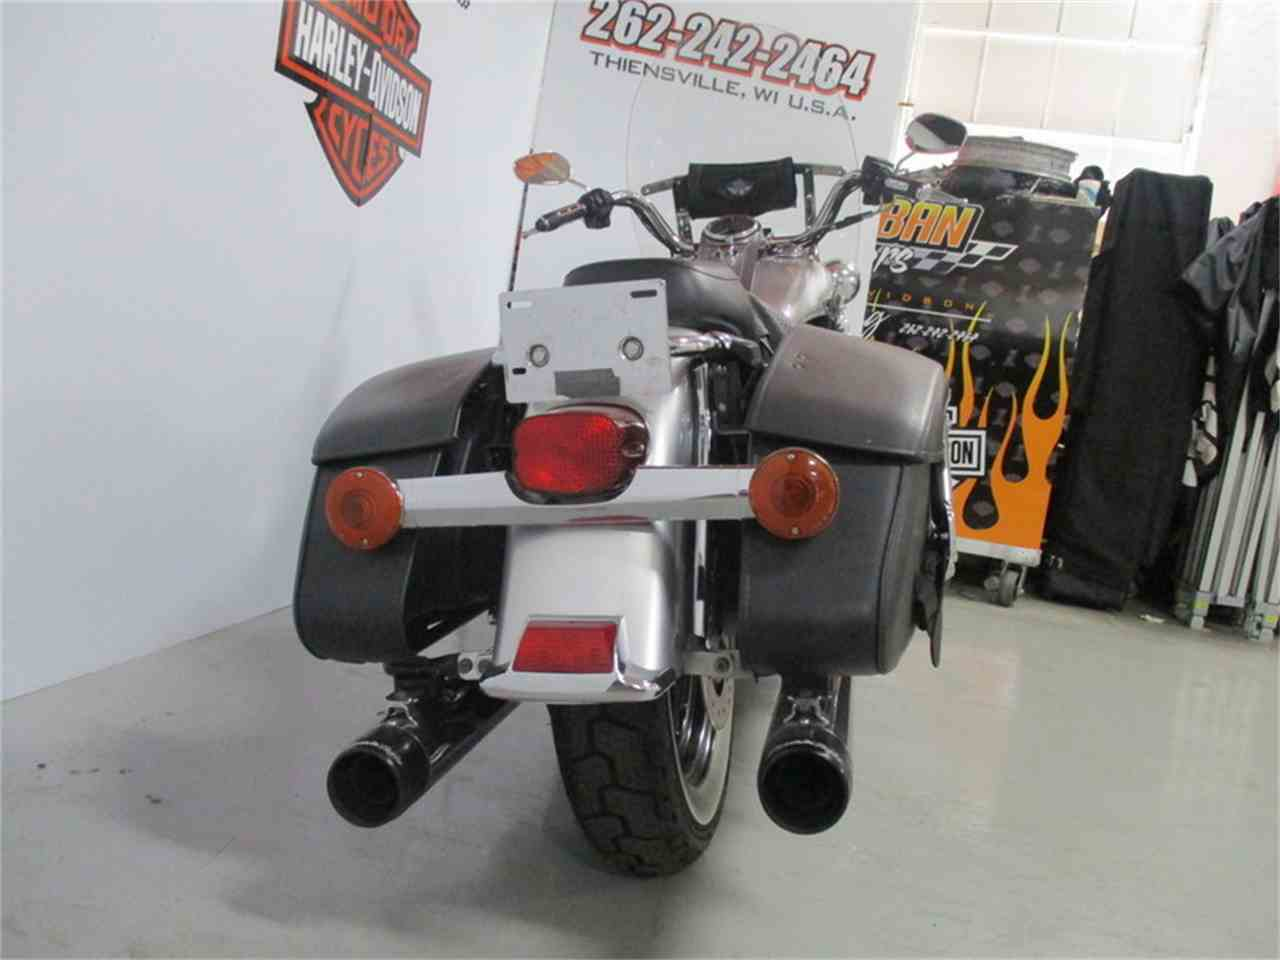 Large Picture of 2003 Harley-Davidson® FLHRC - Road King® Classic located in Thiensville Wisconsin - $7,734.00 Offered by Suburban Motors, Inc. - J8B5